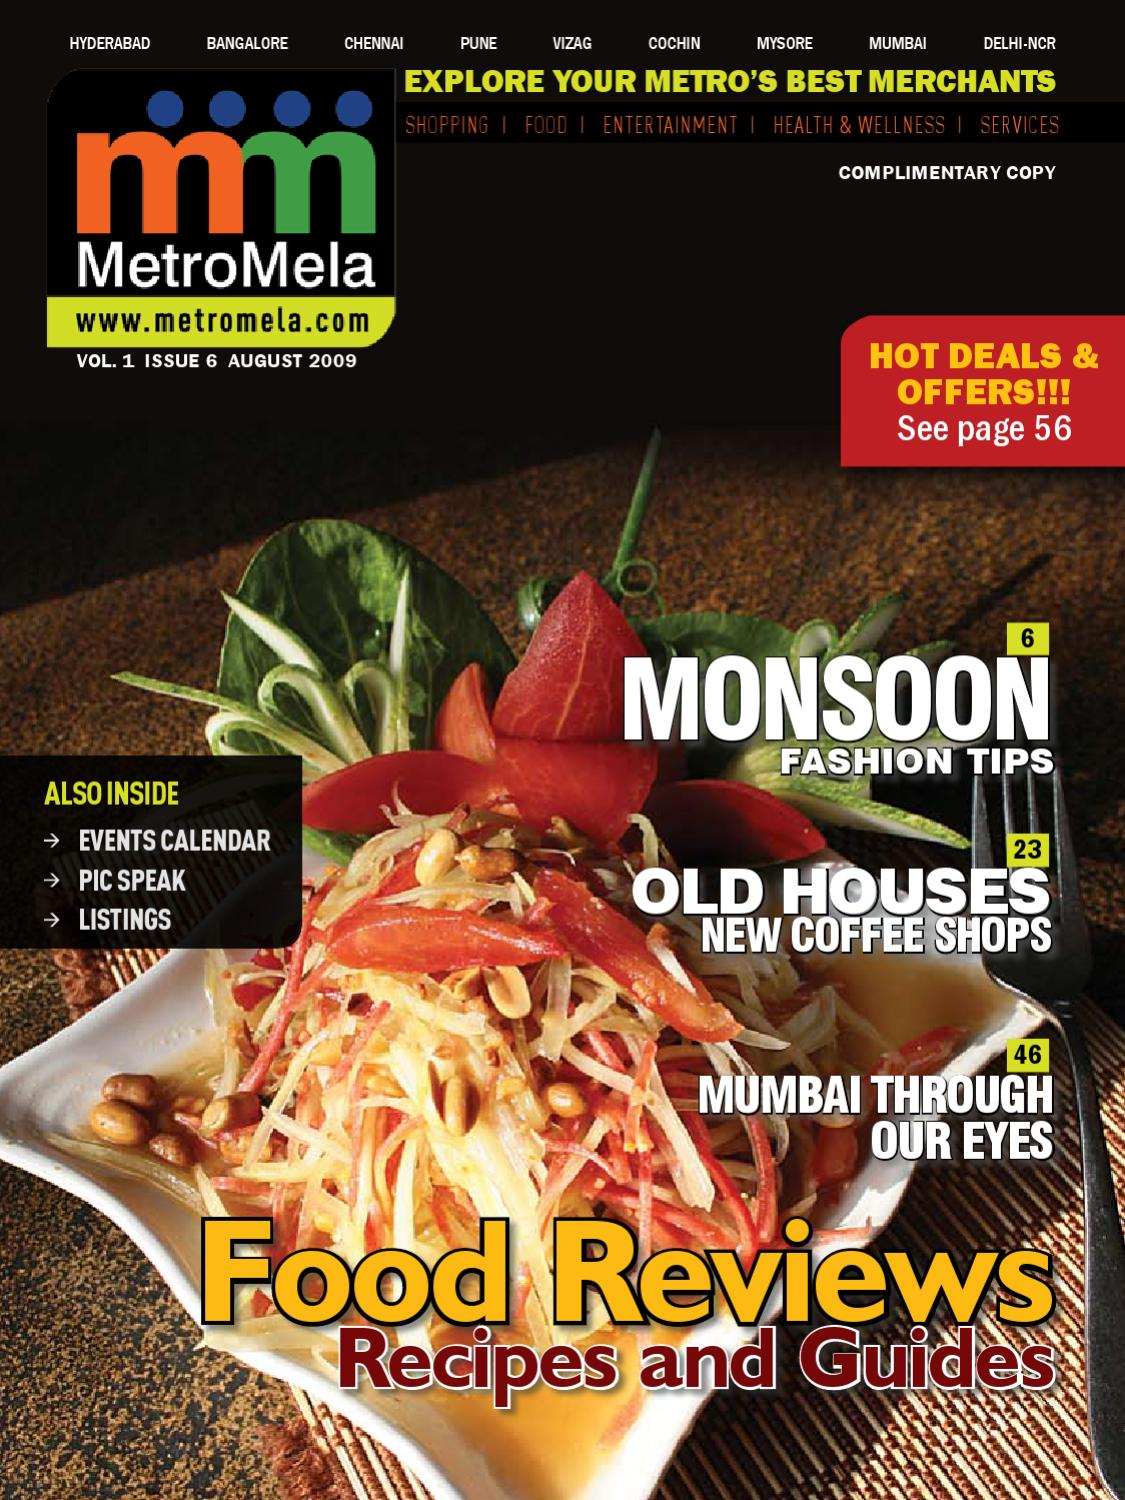 Http Hyderabad Metromela Com Images Magazine August09issue By